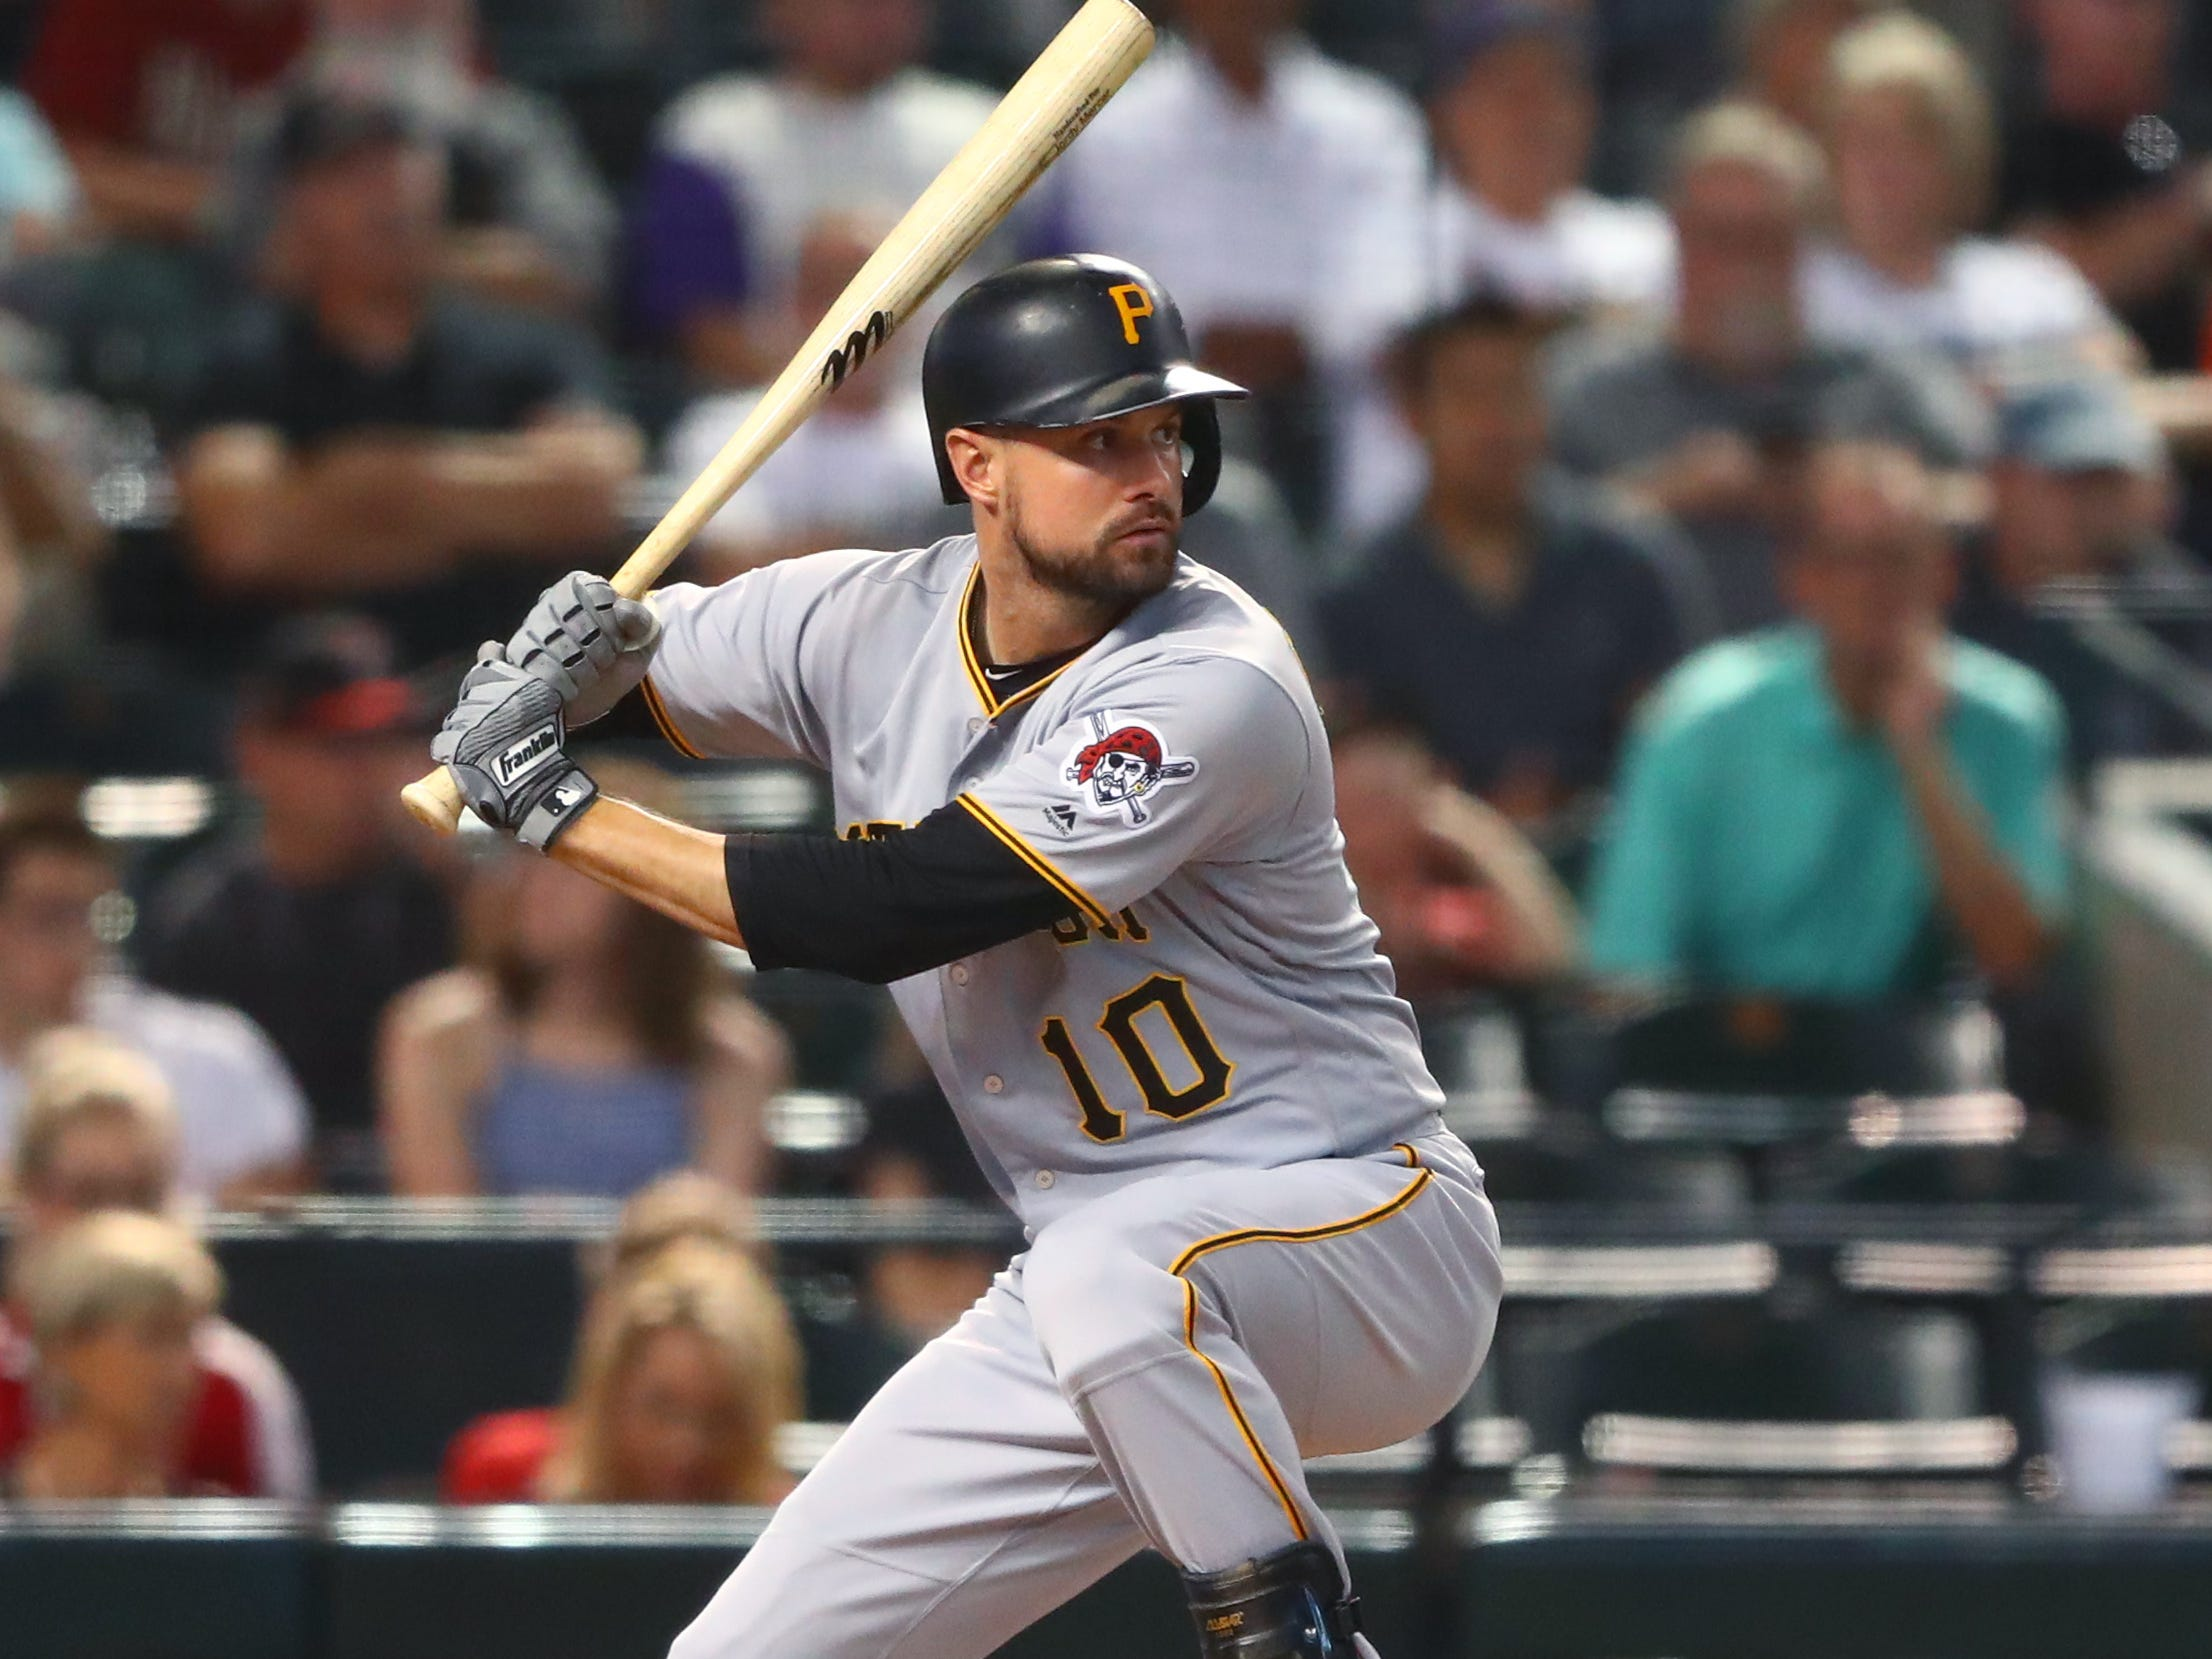 Tigers' Jordy Mercer ready to bring leadership, contact hitting to Detroit